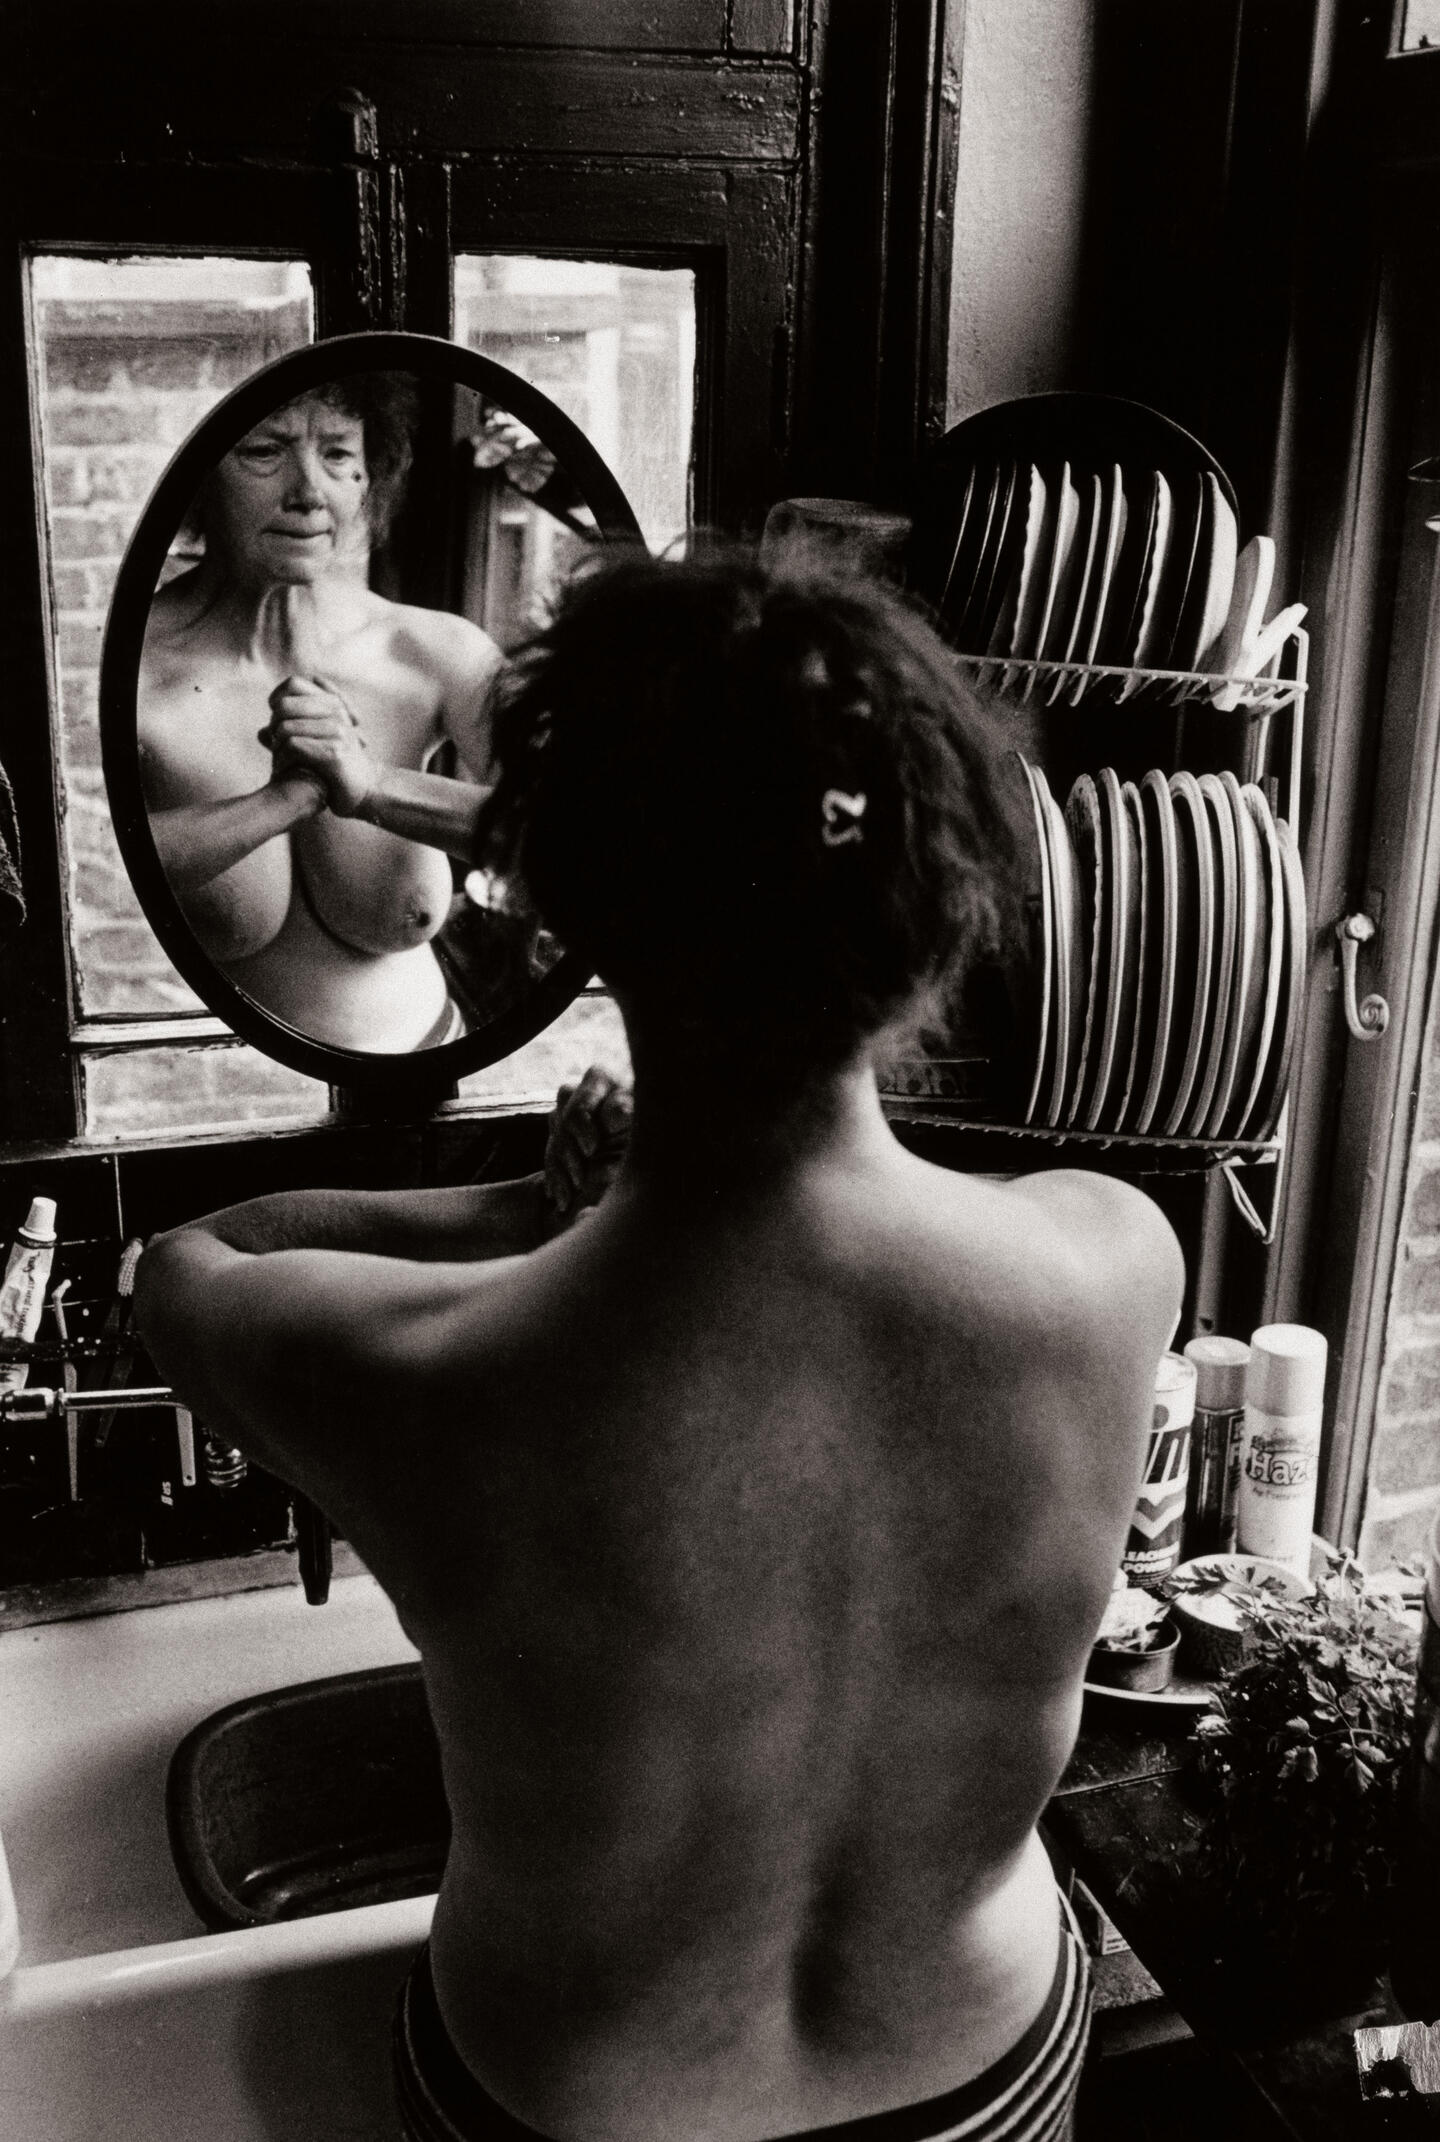 Self portrait of woman looking into mirror reflection